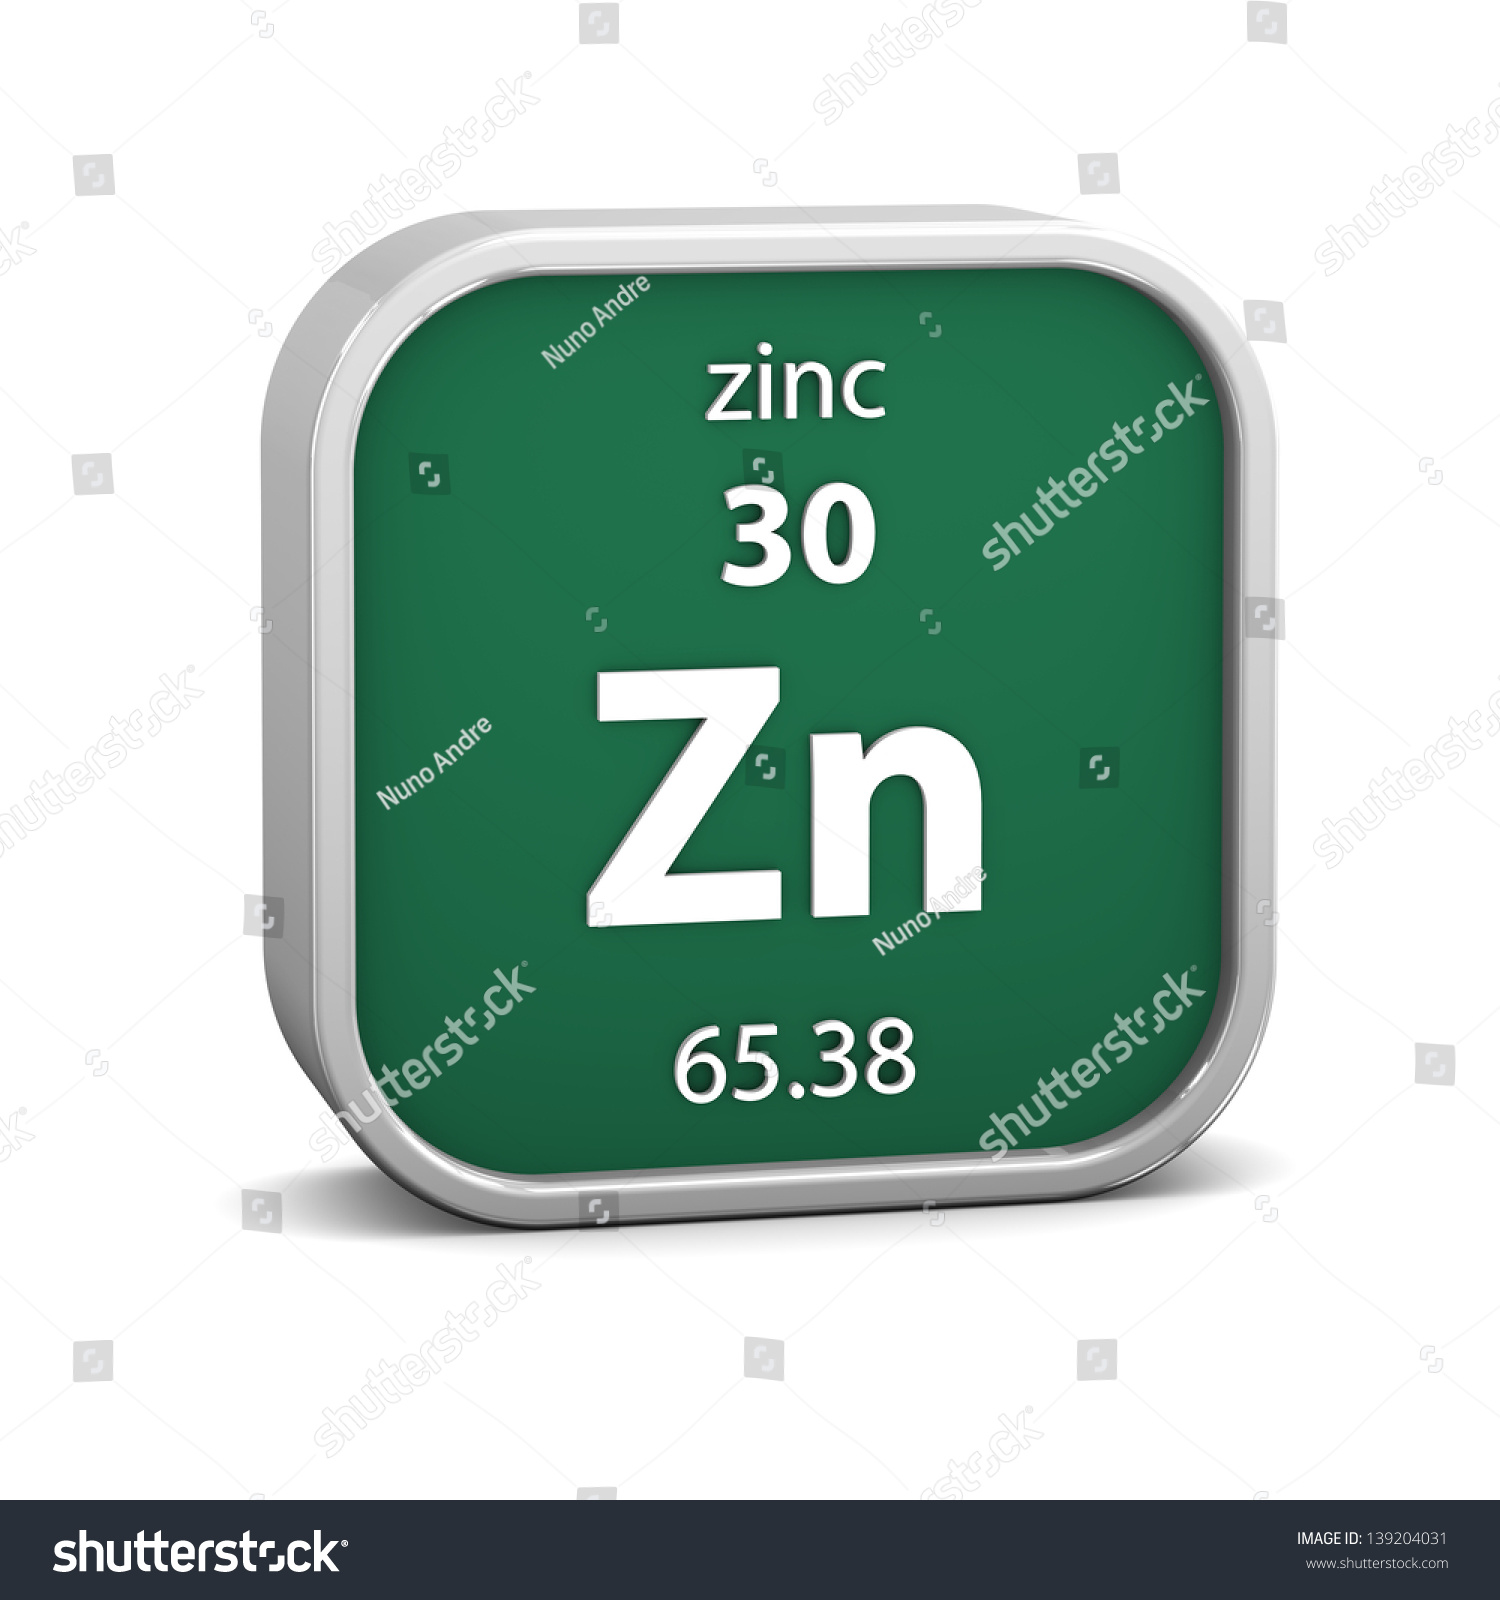 Zinc in periodic table choice image periodic table images what number is zinc on the periodic table image collections zinc material on periodic table part gamestrikefo Gallery